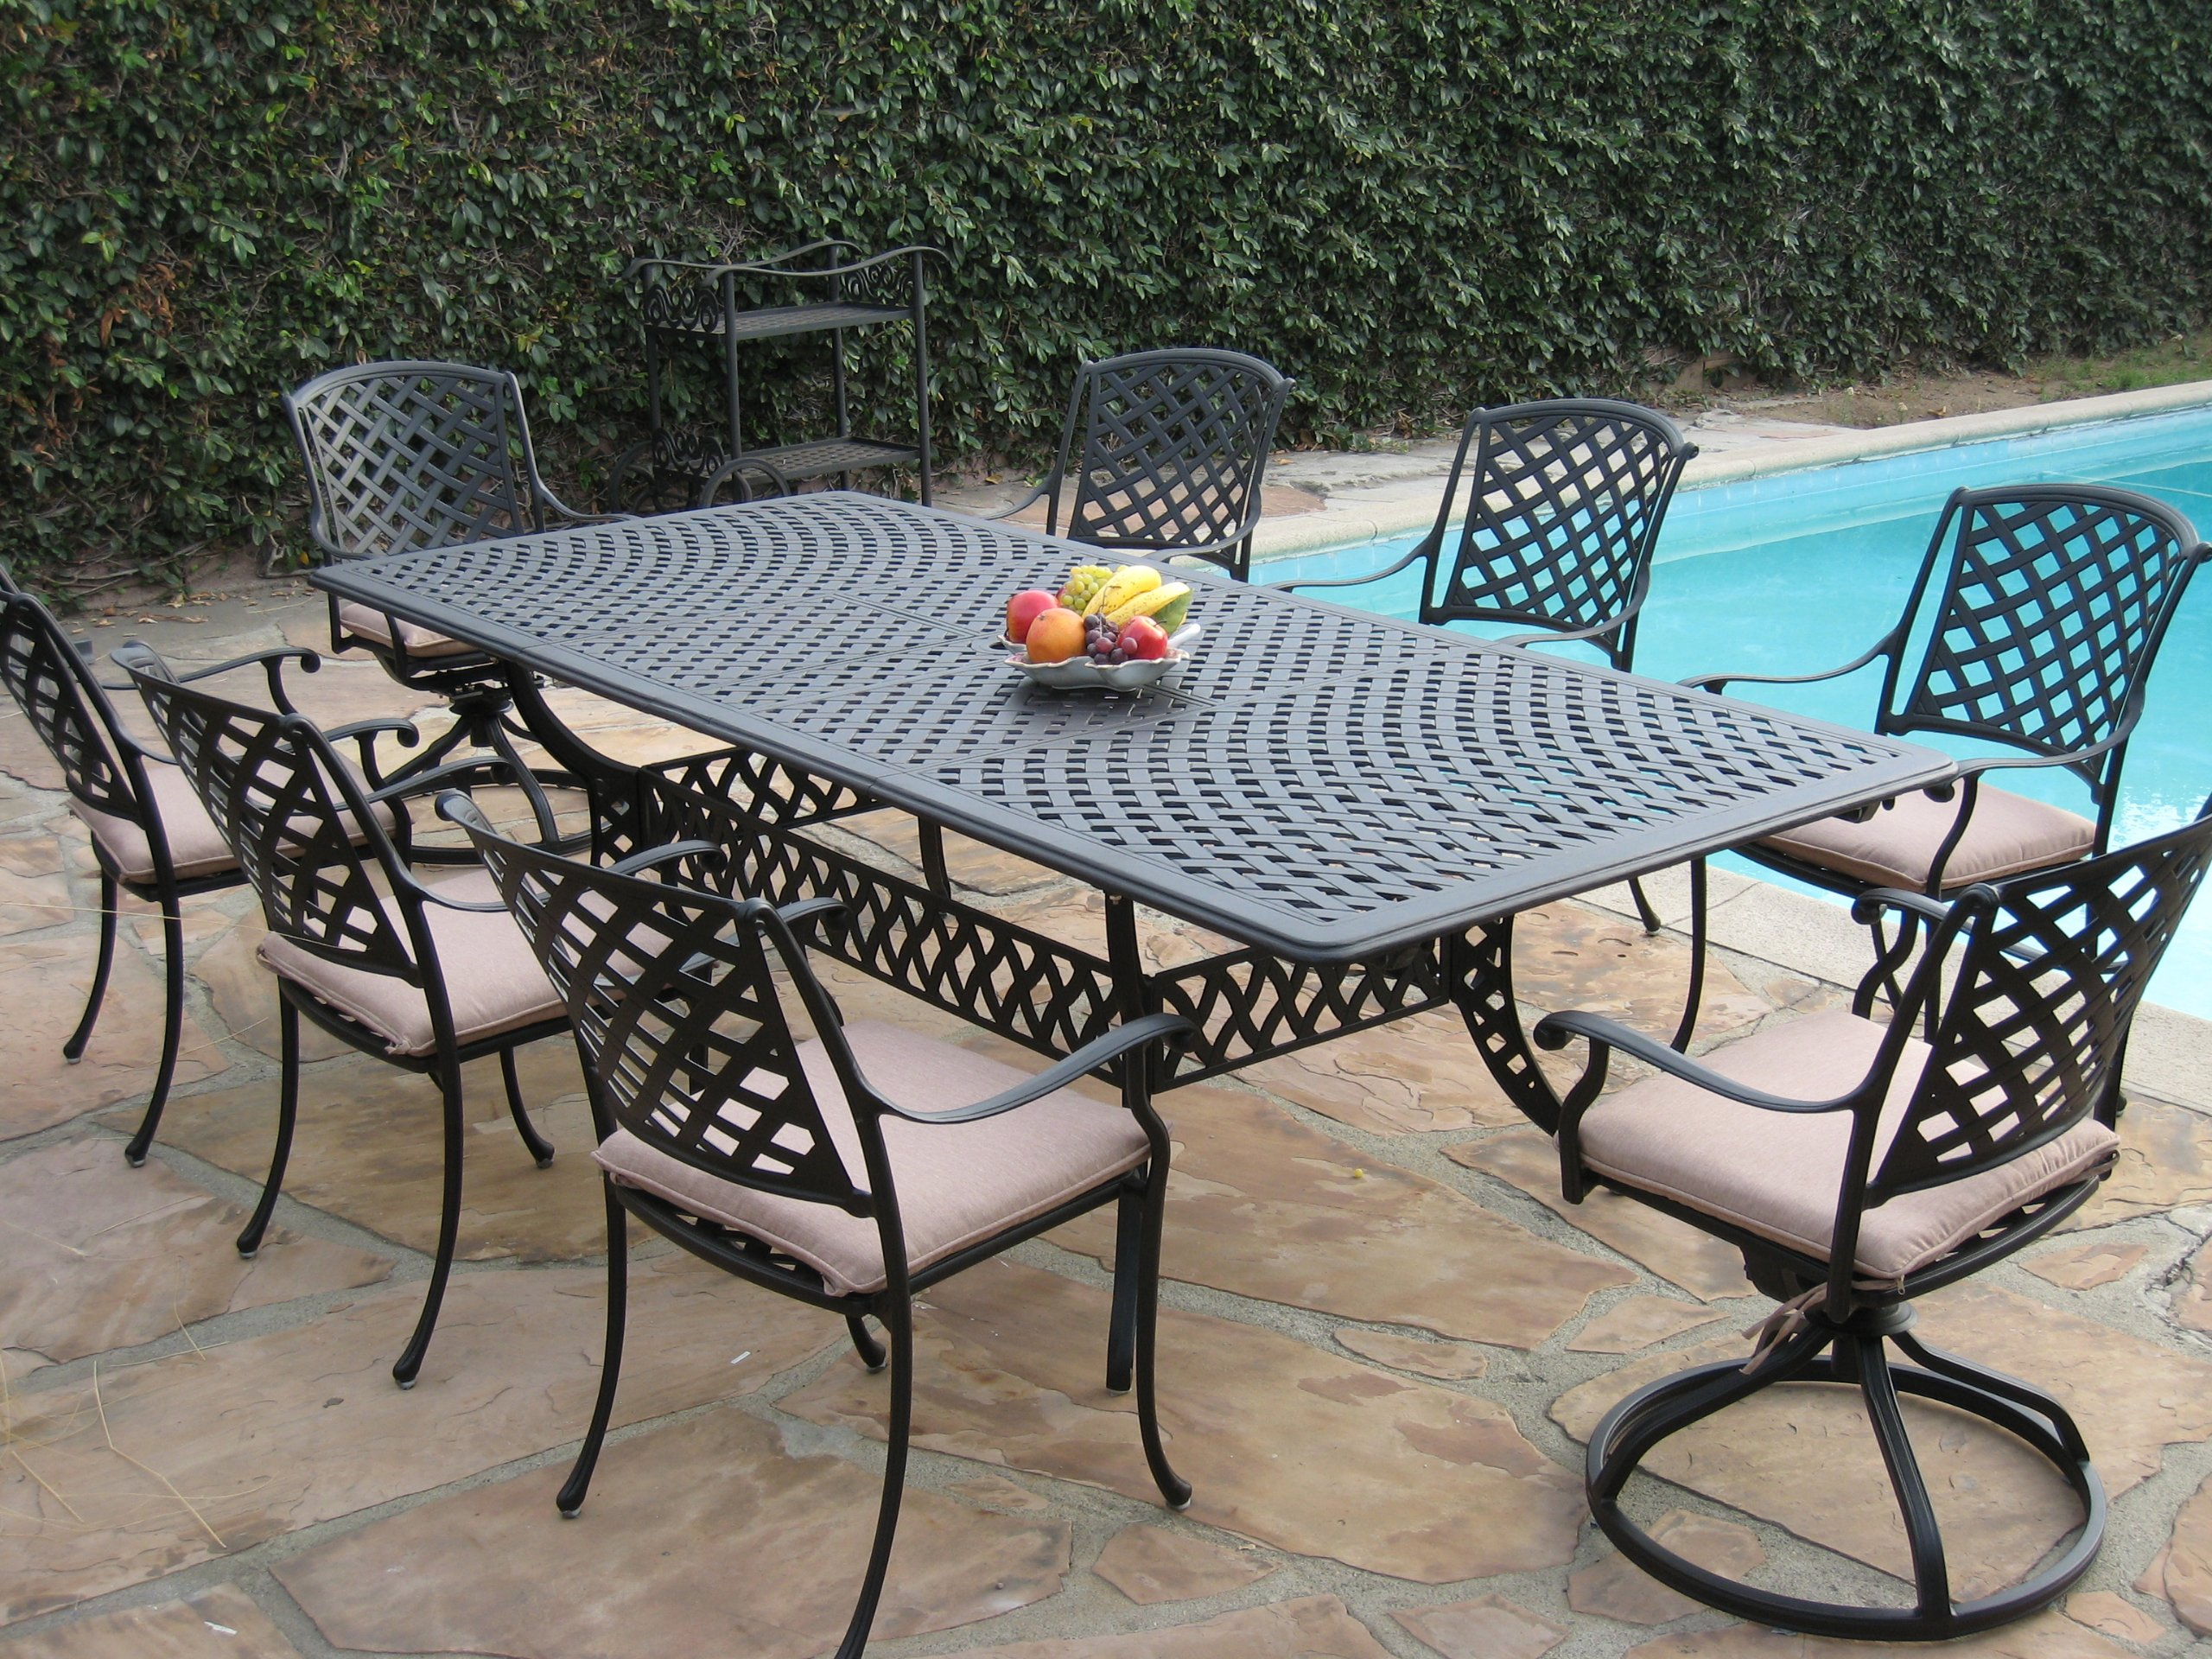 Cast Aluminum Outdoor Patio Furniture 9 Piece Extension Dining Table Set with 2 Swivel Rockers KL09KLSS260112T - CBM Patio Kawaii Collections Made of genuine cast aluminum,Comfortable seating Durable and quality. Assembly required. Color: Desert Brown Slate Finish. Includes: 6 Armchairs 2 Swivel Rockers and with free Cushions 1 Extendable Table. Chairs dimensions: 36.2H x 17.7 Seat Deep x 24.4 - patio-furniture, dining-sets-patio-funiture, patio - A1io3zmFfcL -